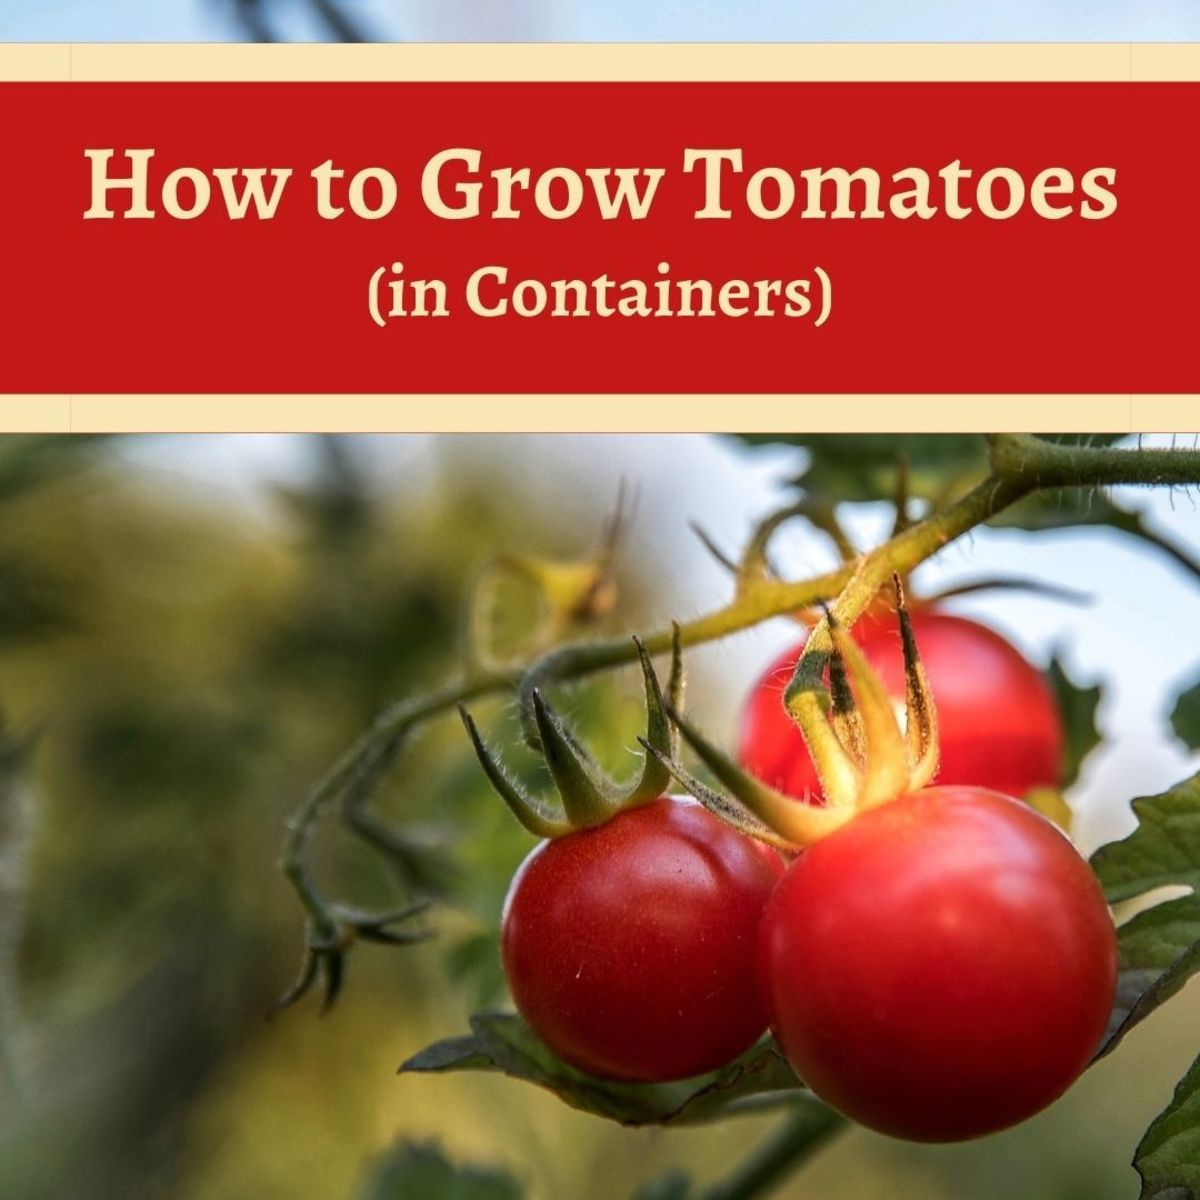 How to Grow Tomatoes in Containers: A Small Space Bumper Crop